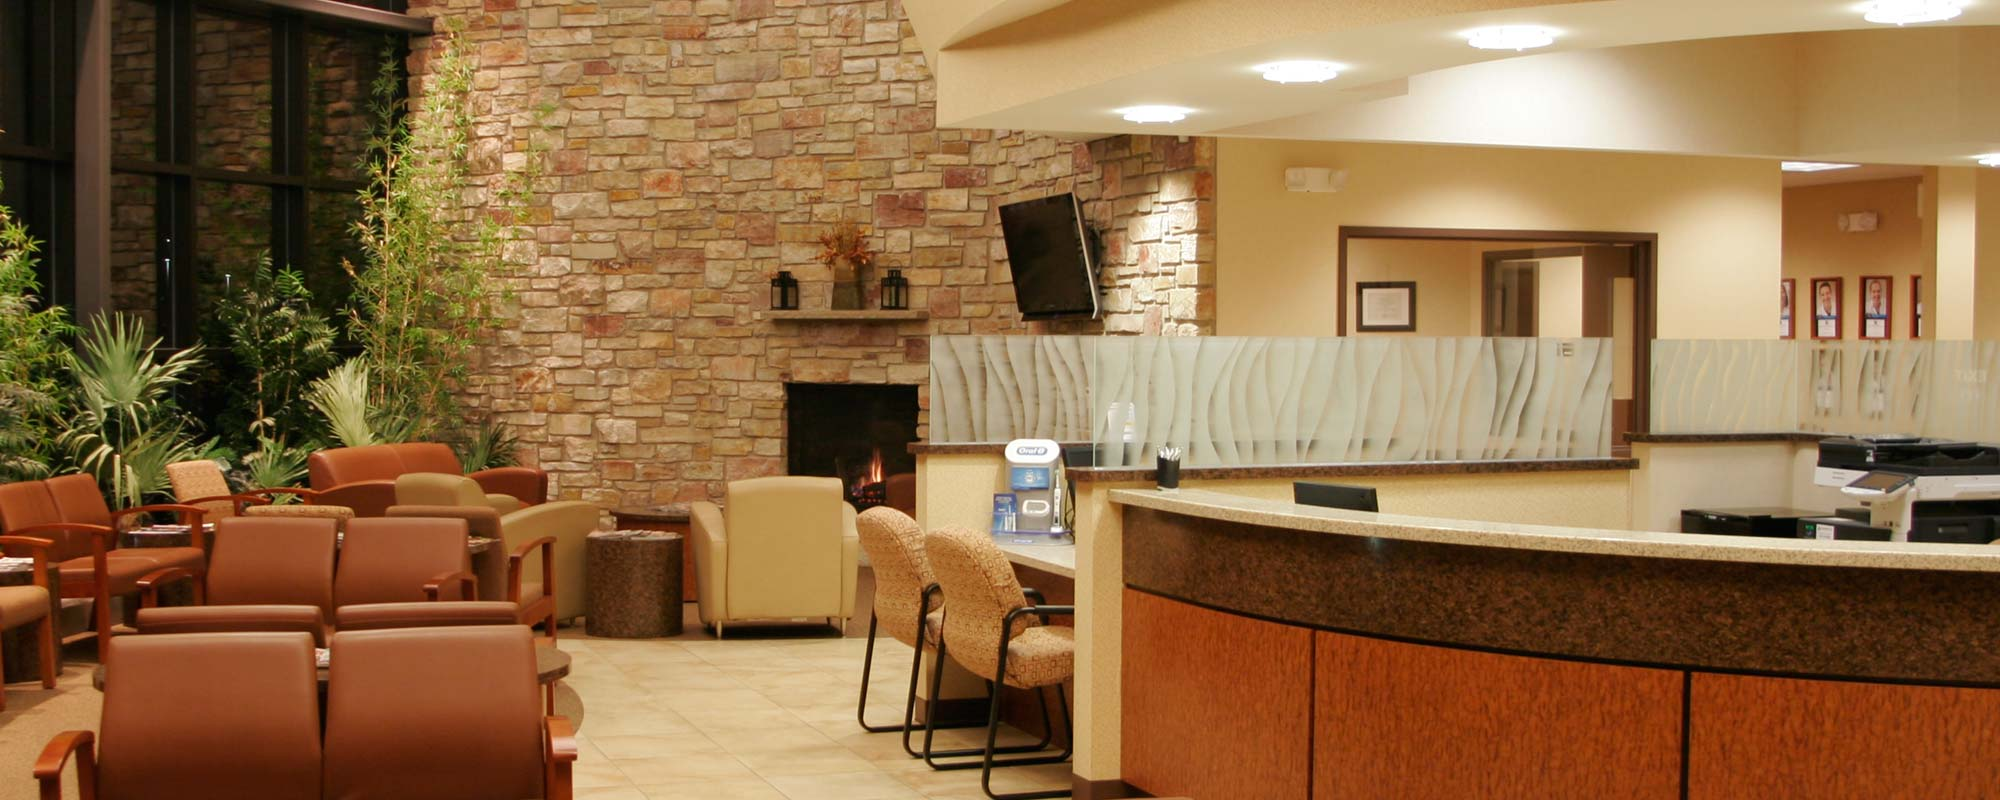 The lobby of Dental Associates Appleton North clinic.